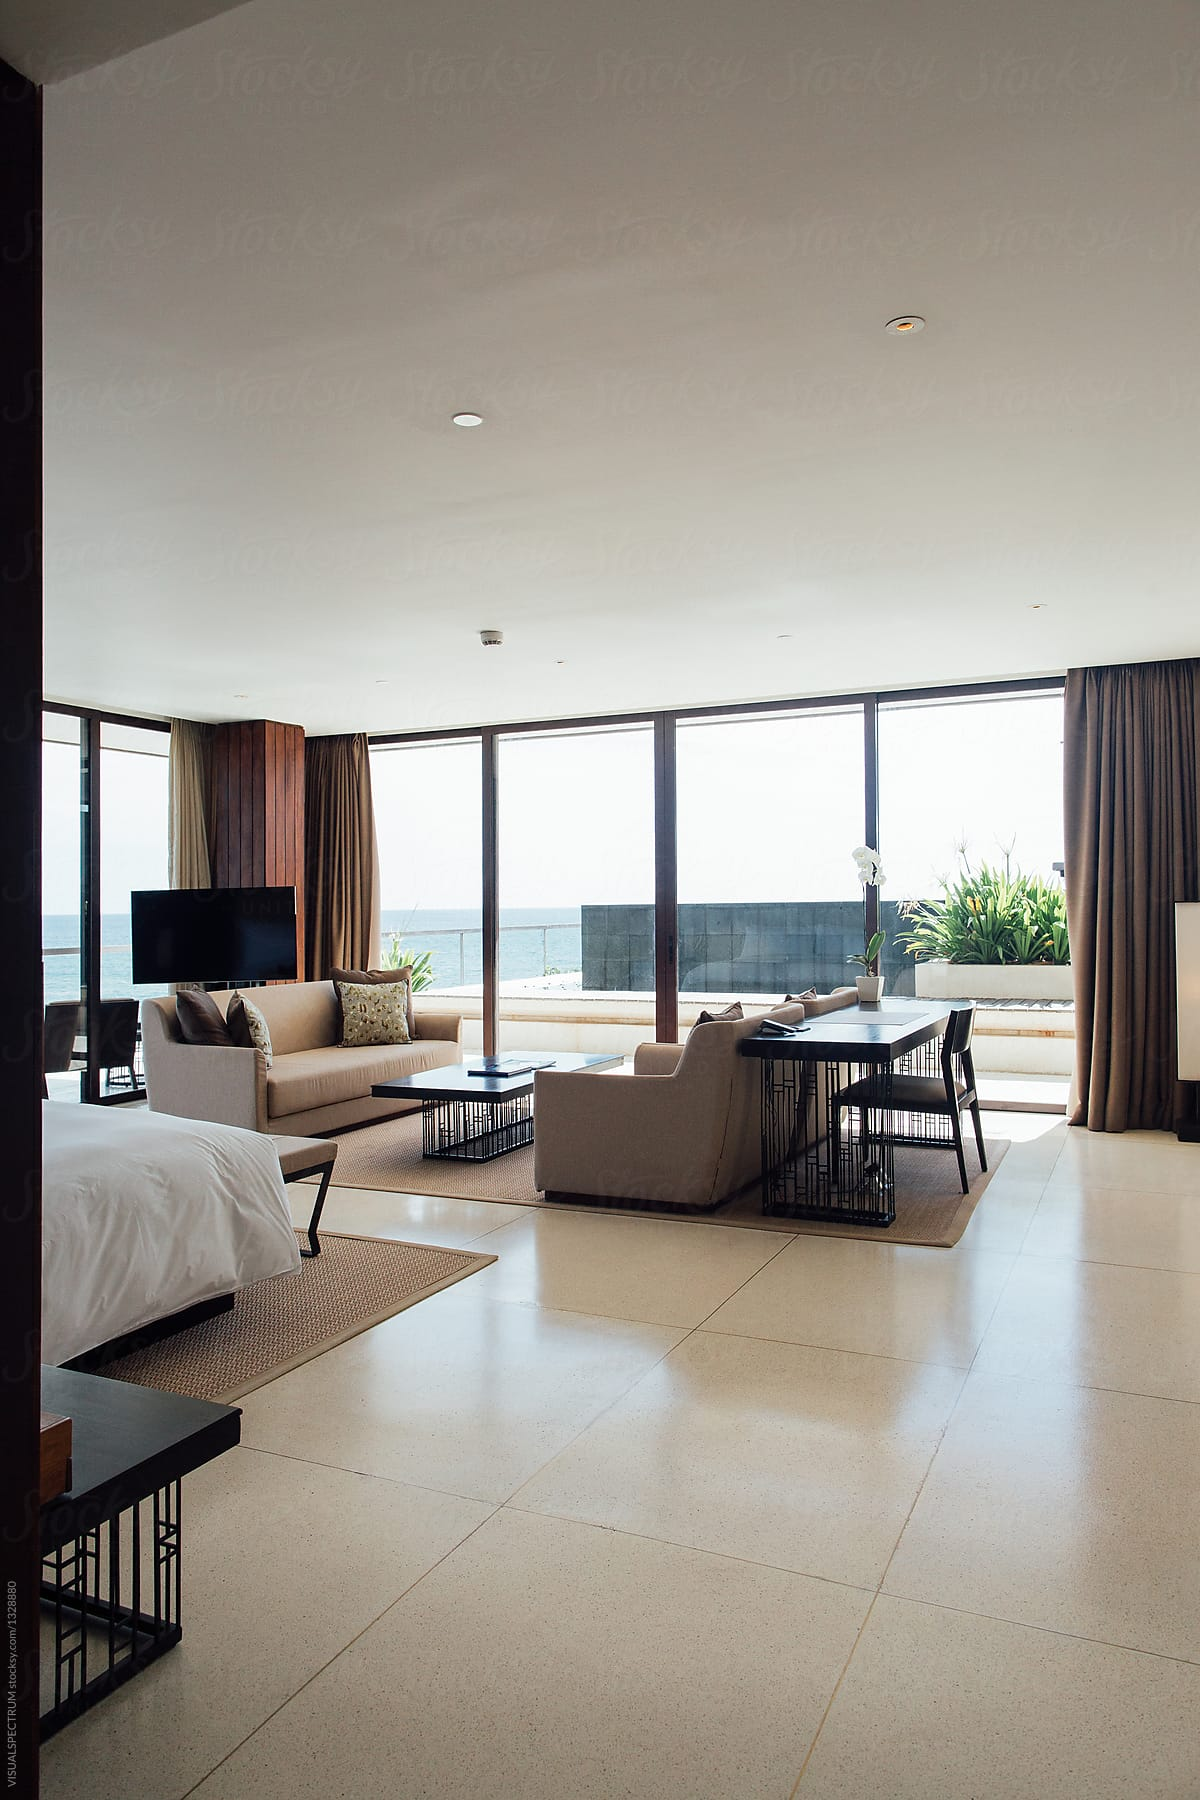 Minimalist Spacious Master Bedroom In High End Beach Resort By Visualspectrum Bedroom Modern Stocksy United